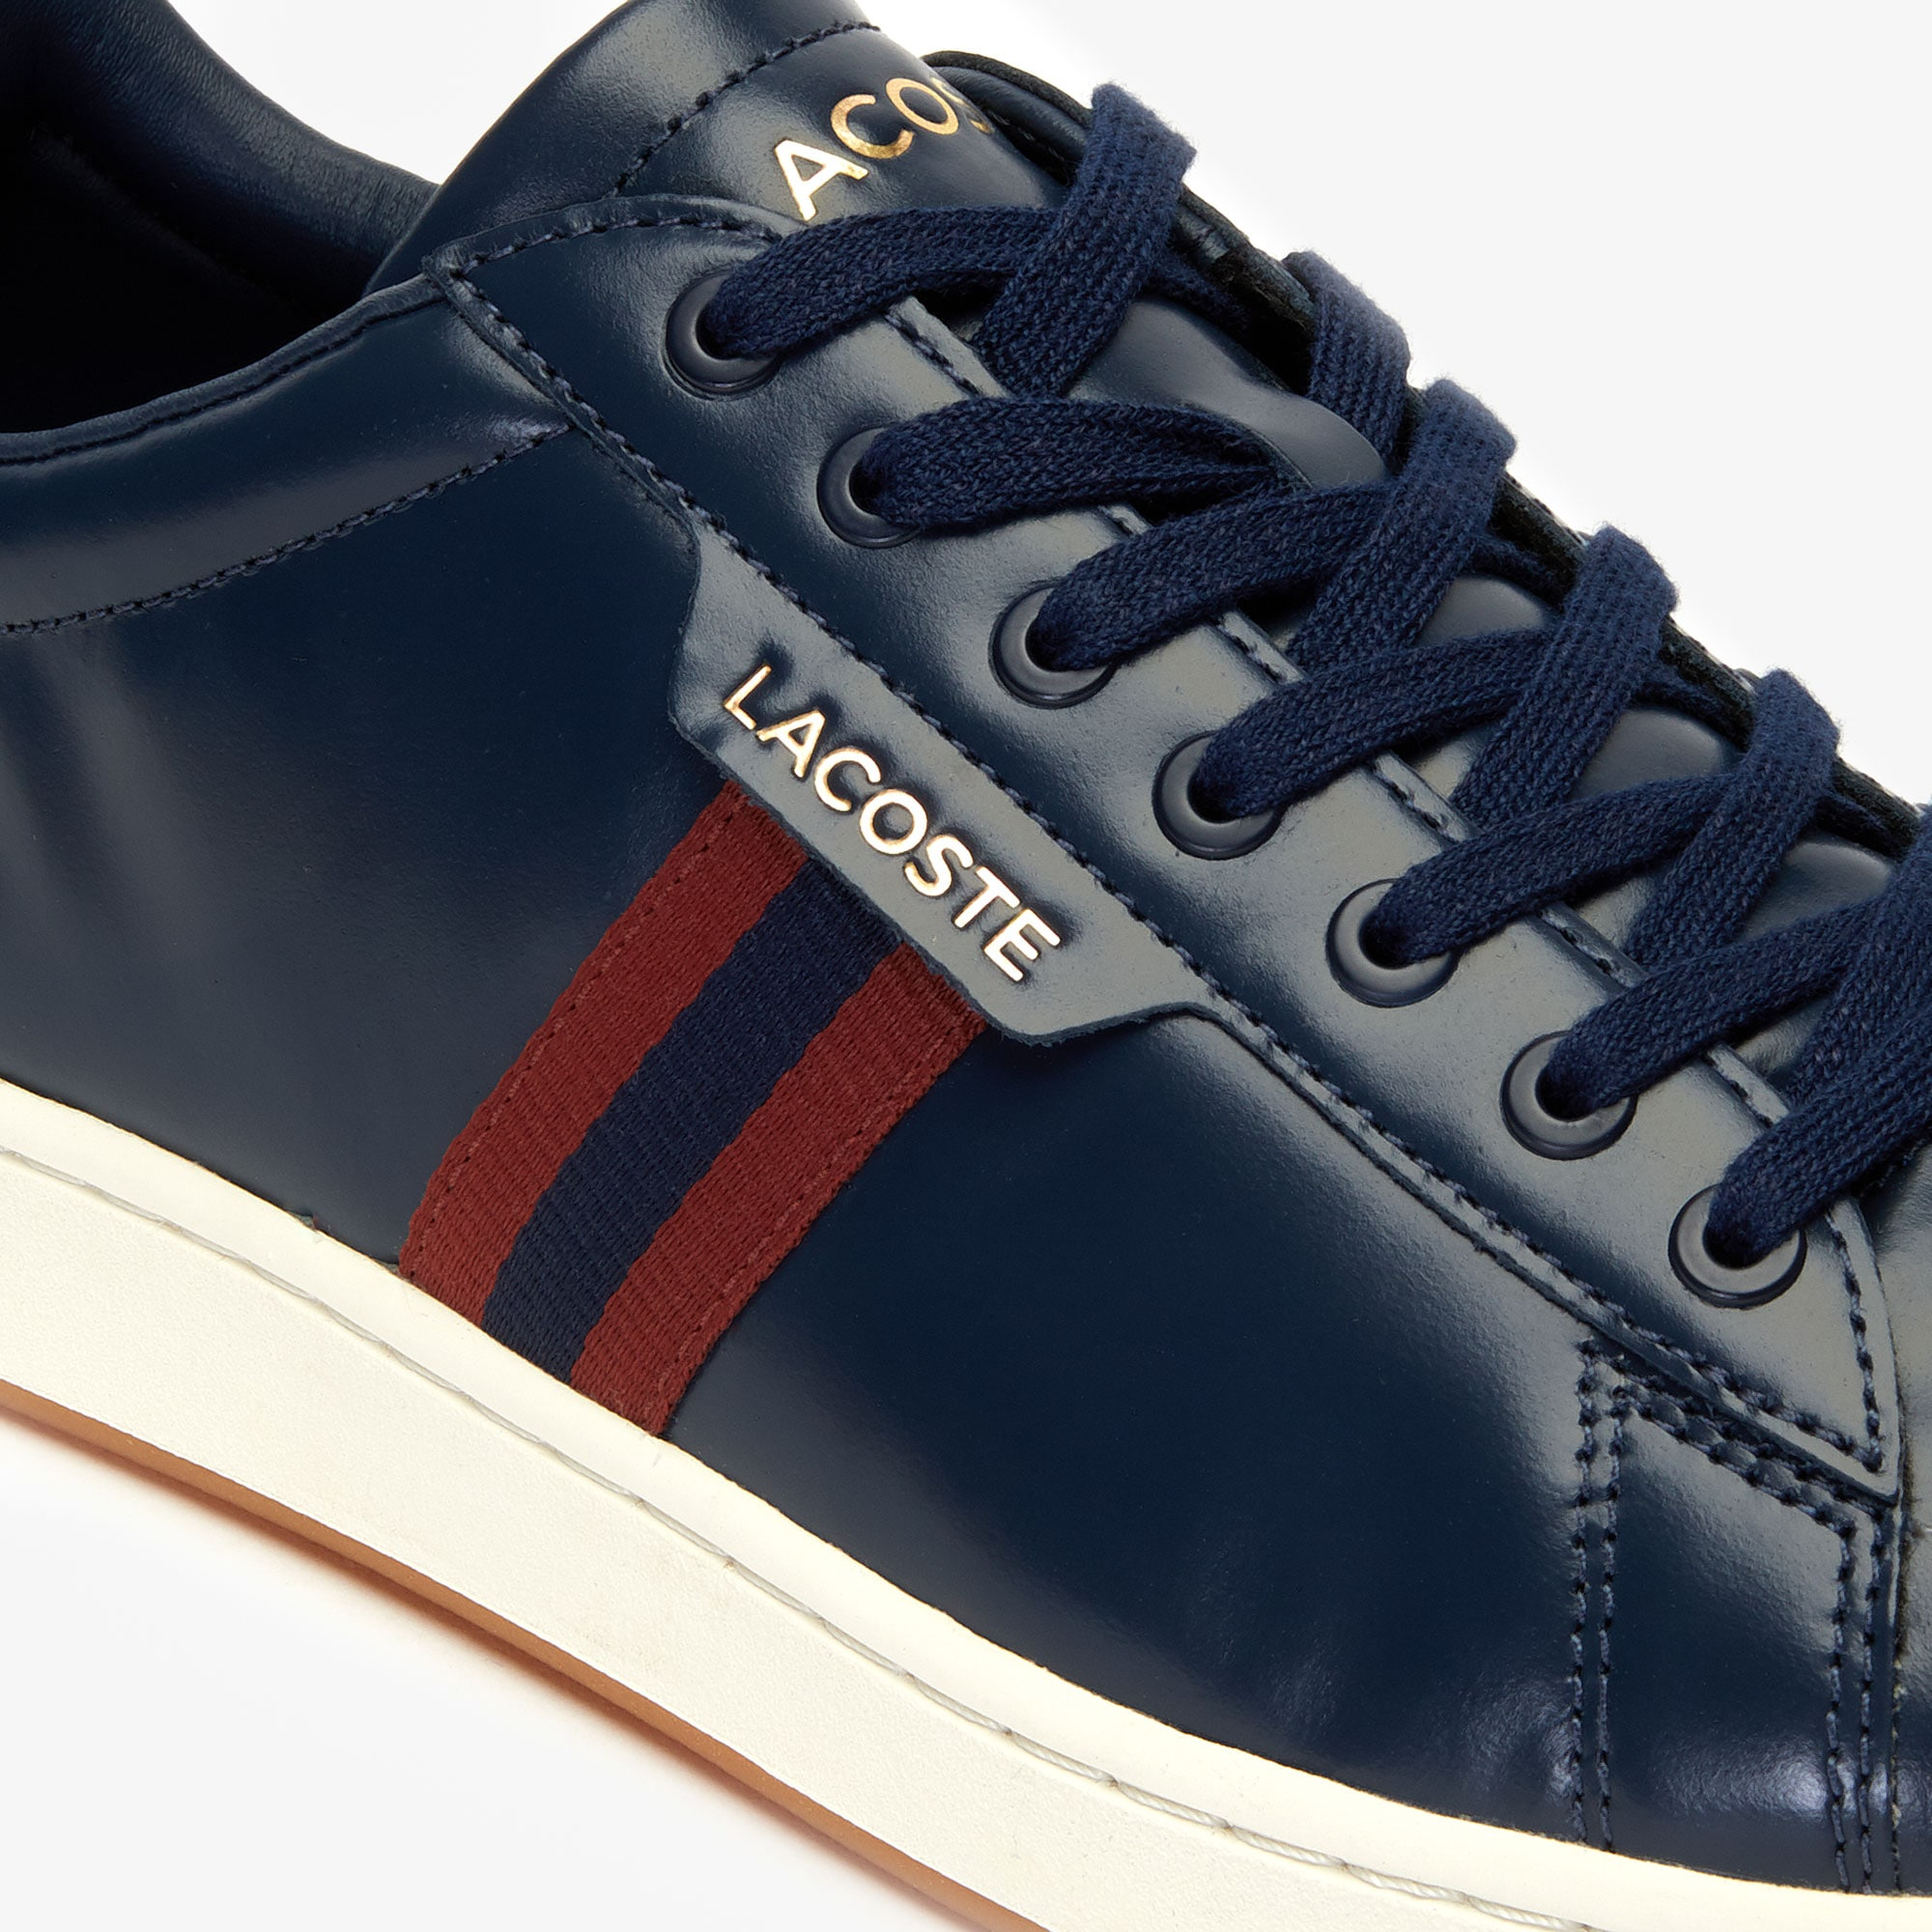 Men's Carnaby Evo Tricolor Leather Sneakers